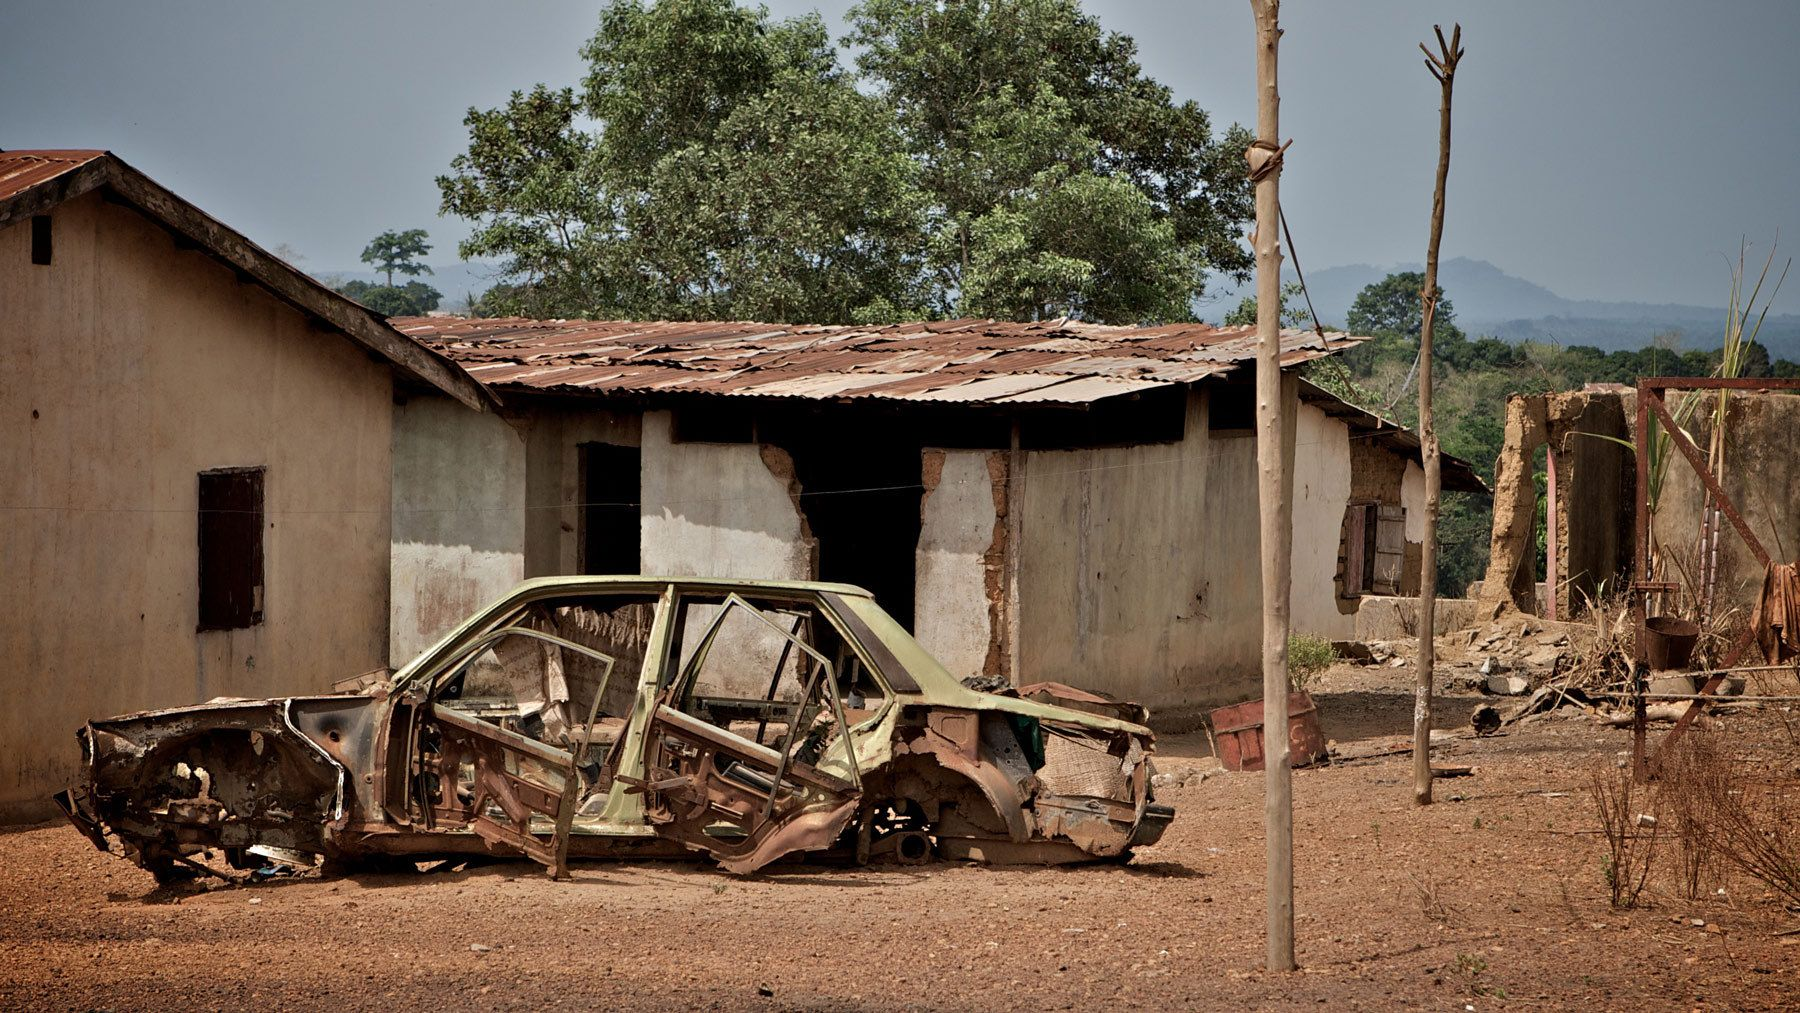 1burned_out_car_sierra_leone.jpg